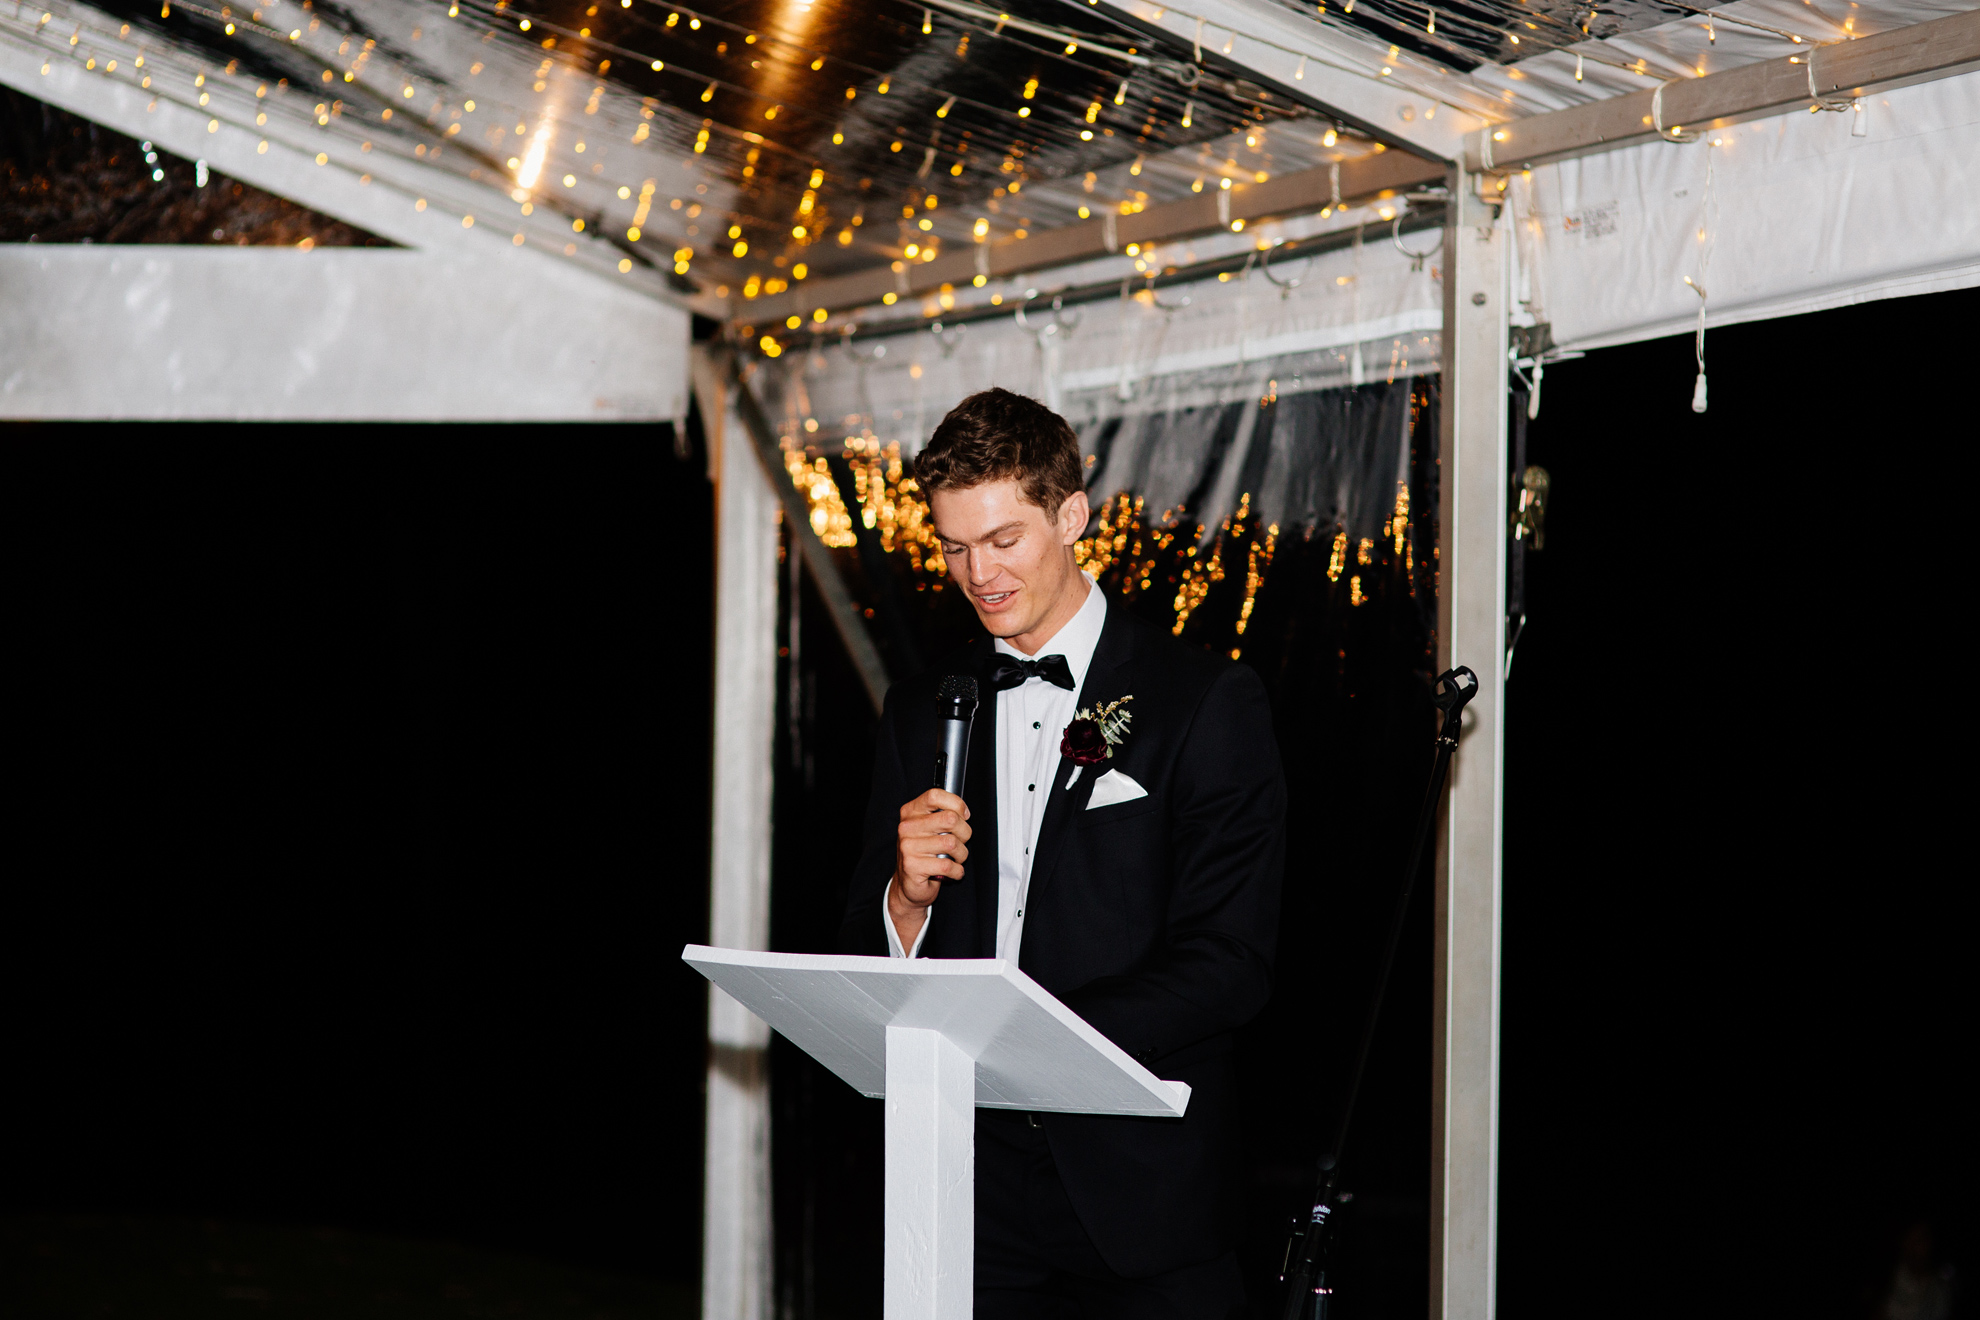 086-Chloe_Joe_Rockhampton_Wedding.jpg